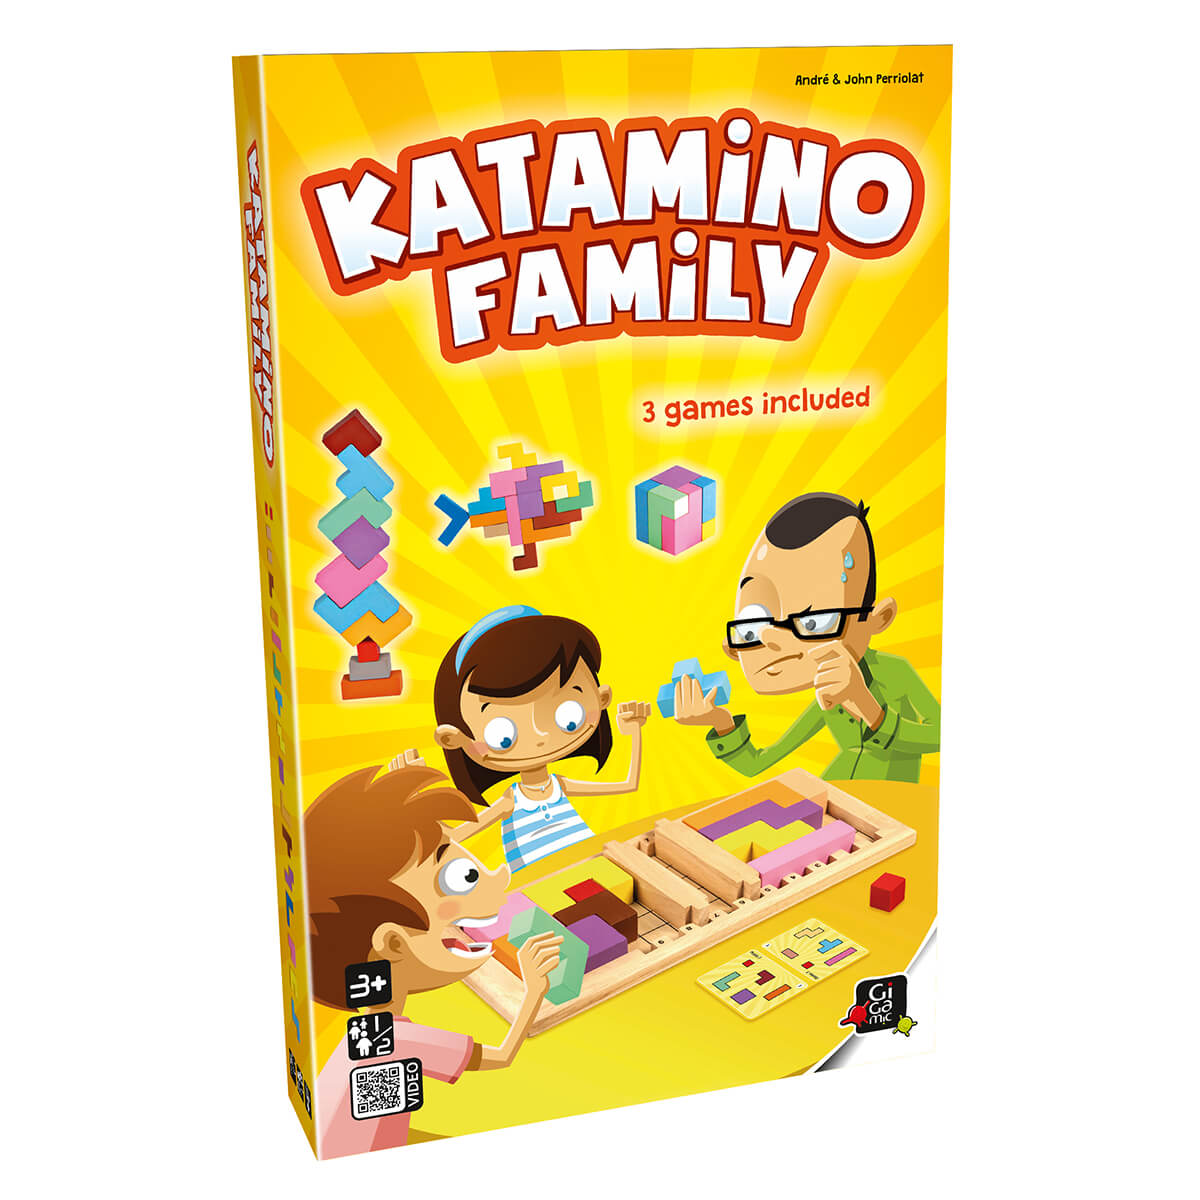 Gigamic Katamino Family GZUF Board Game